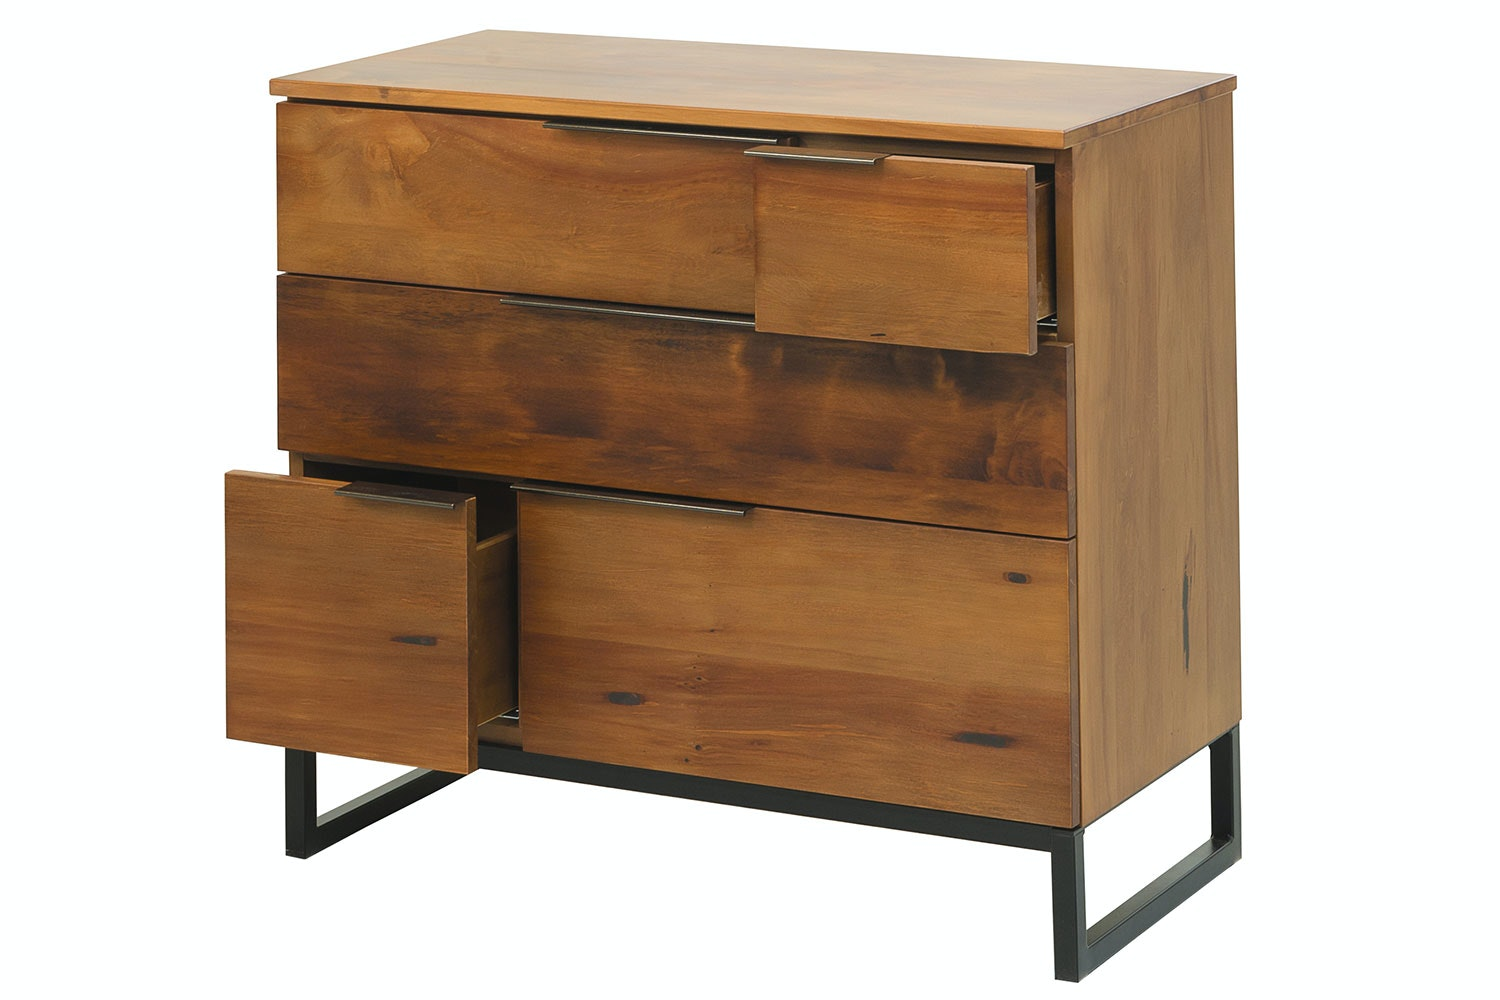 Matai Bay Lowboy by Sorensen Furniture